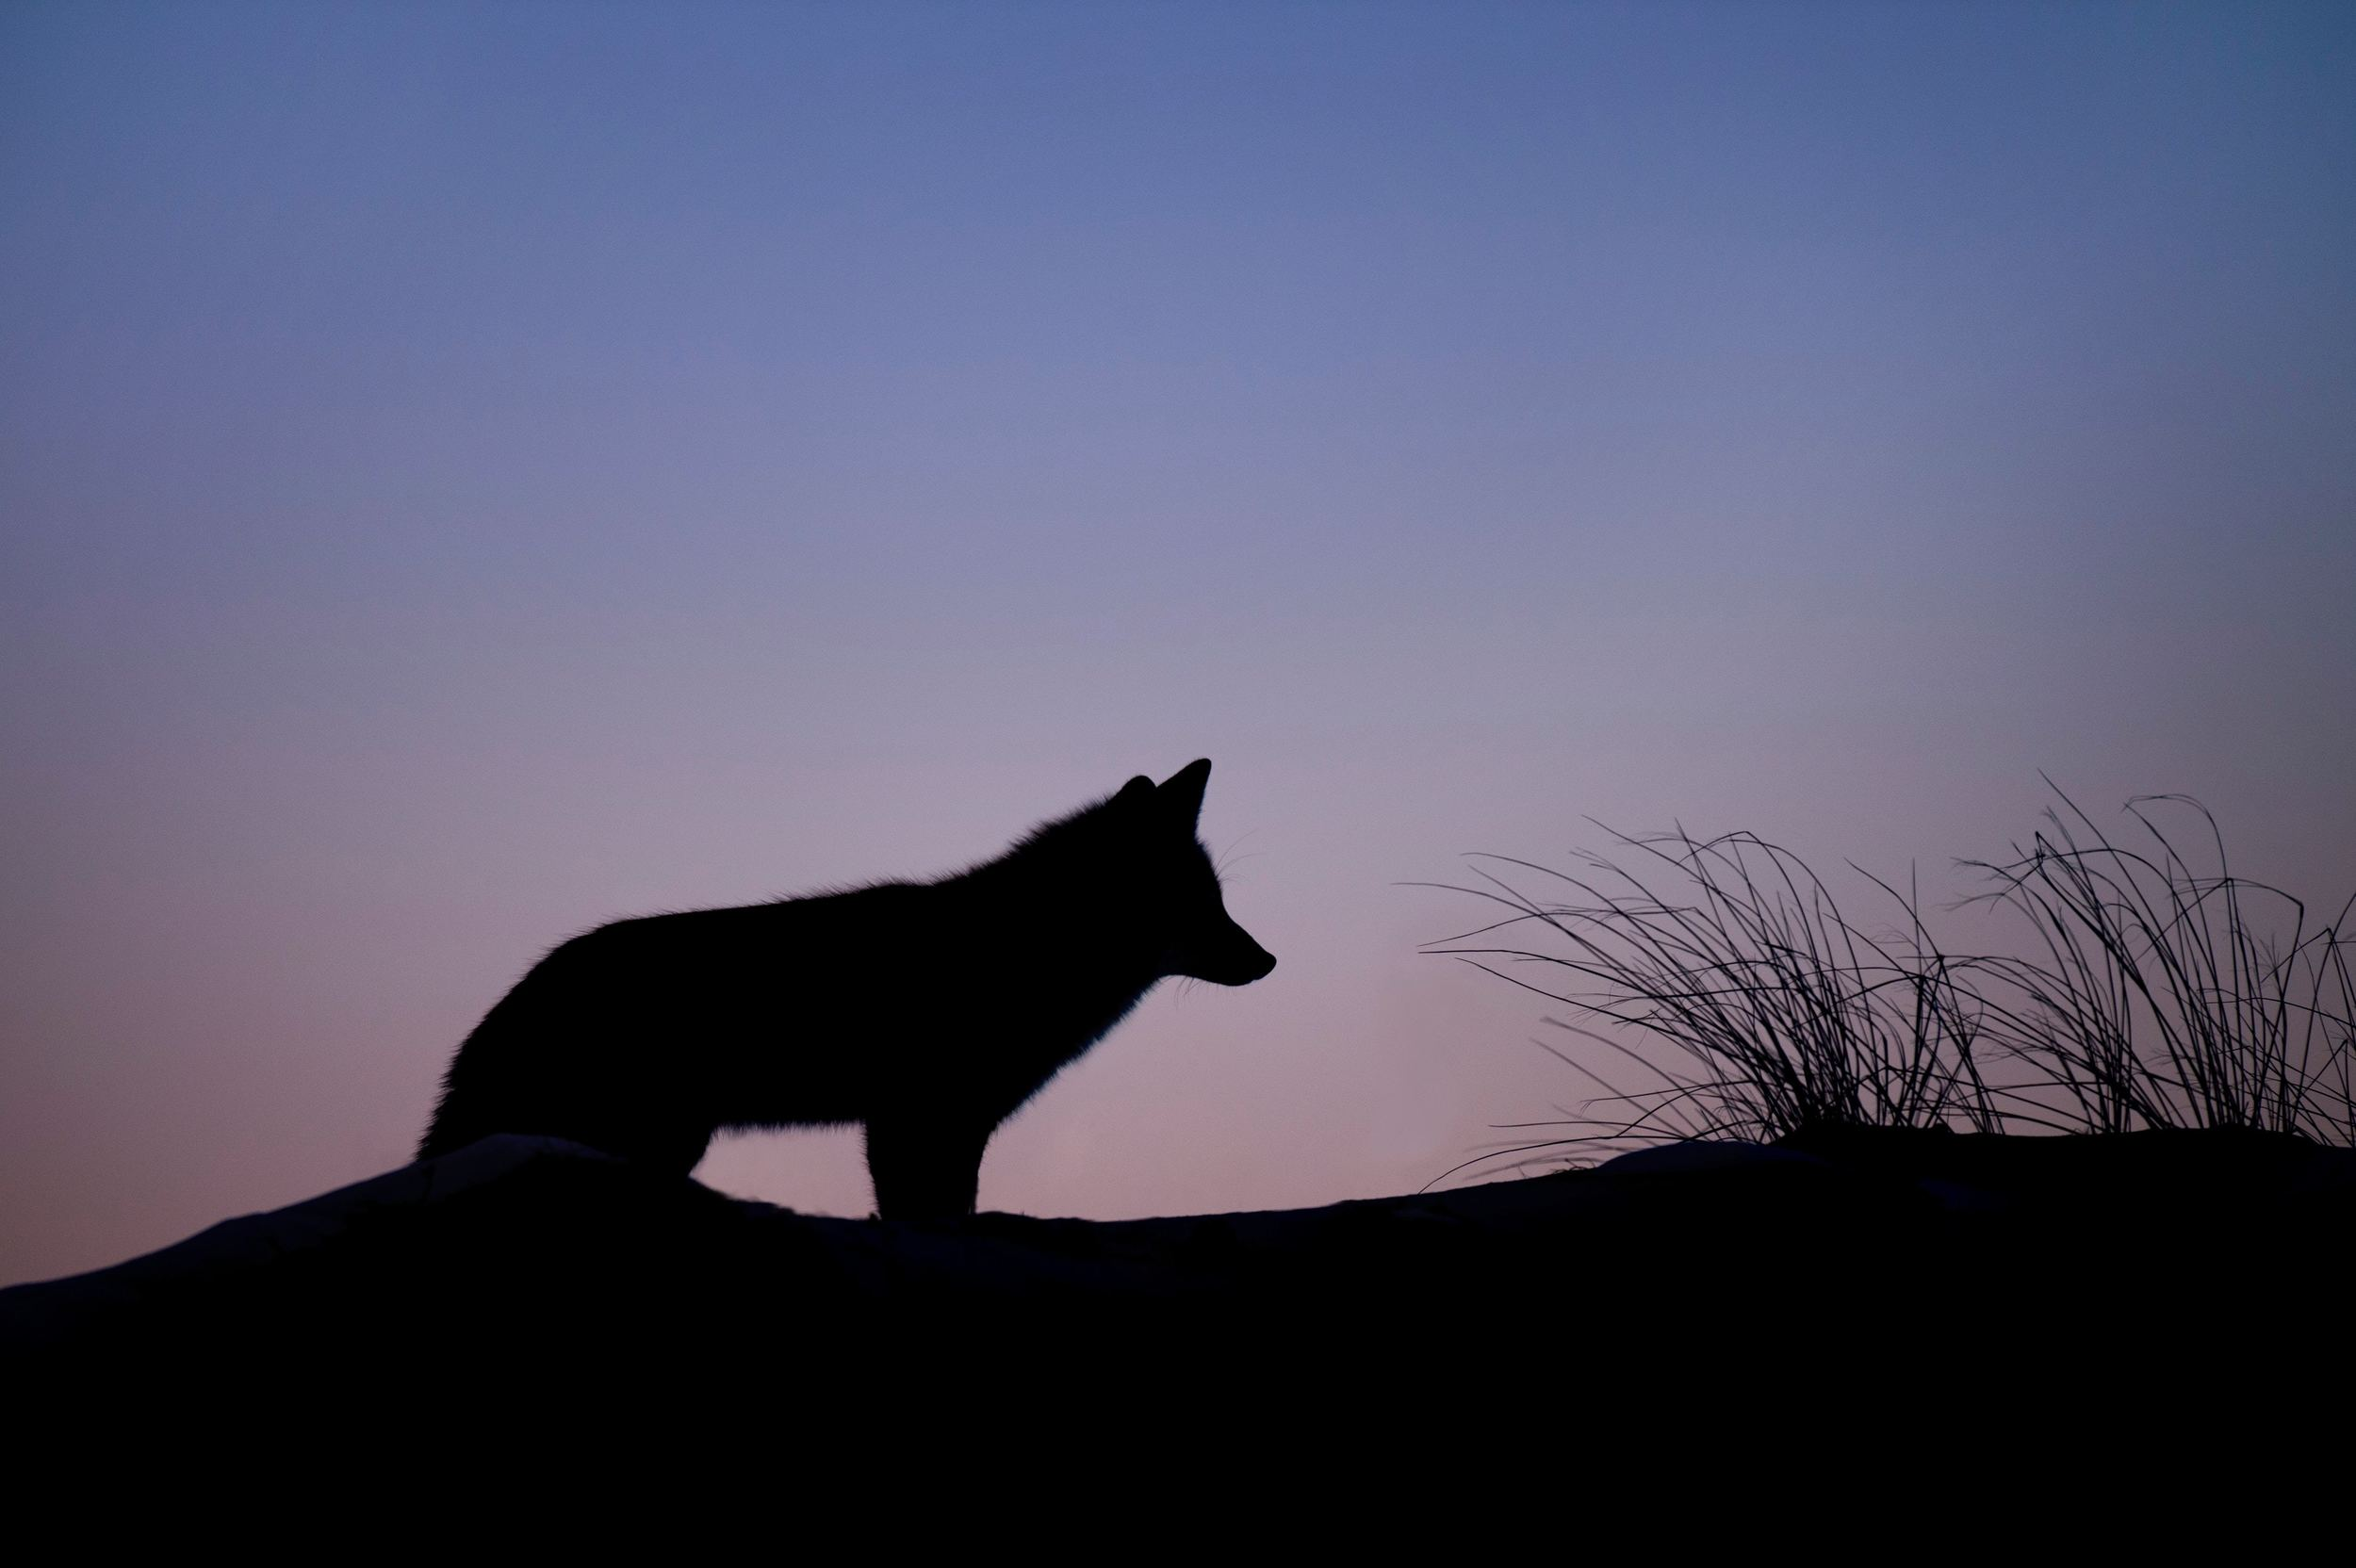 Fox silhouetted against twilight sky